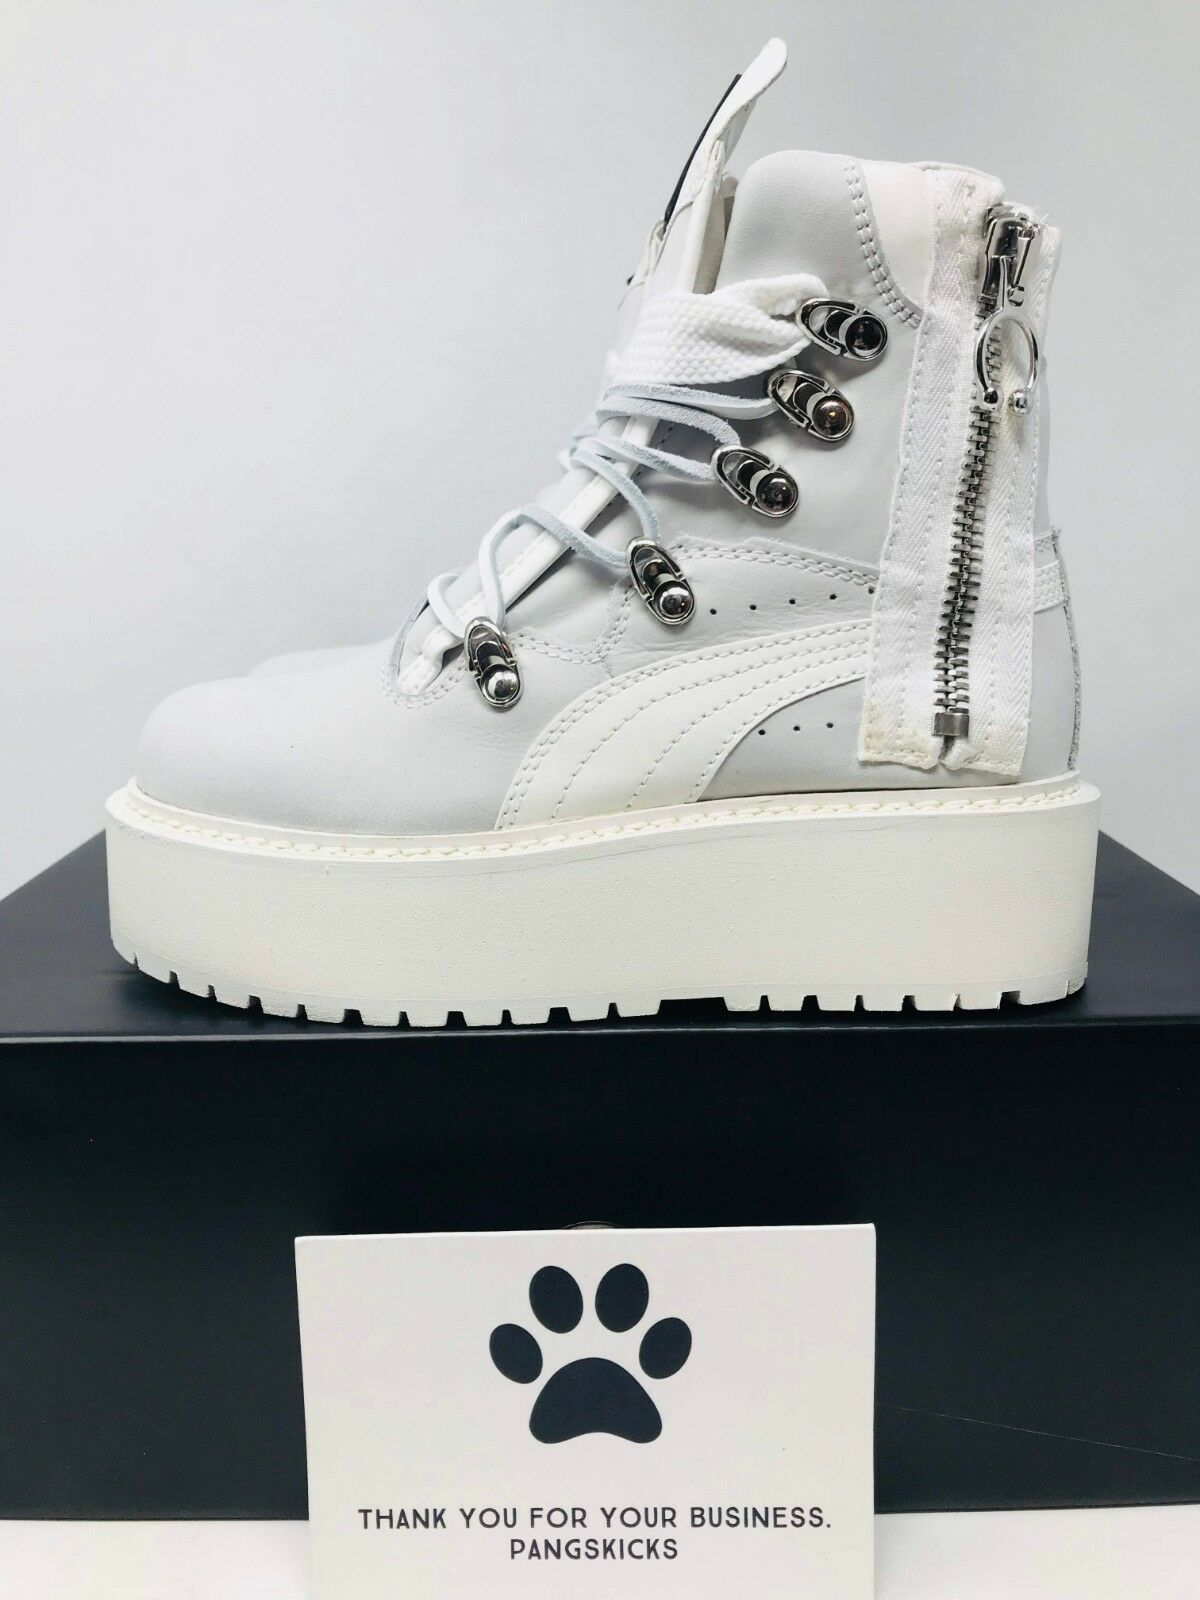 e67db6caf496 Women s PUMA Fenty by Rihanna Sneaker Shoe Boot 36347501 Size 5 White W19  DC for sale online